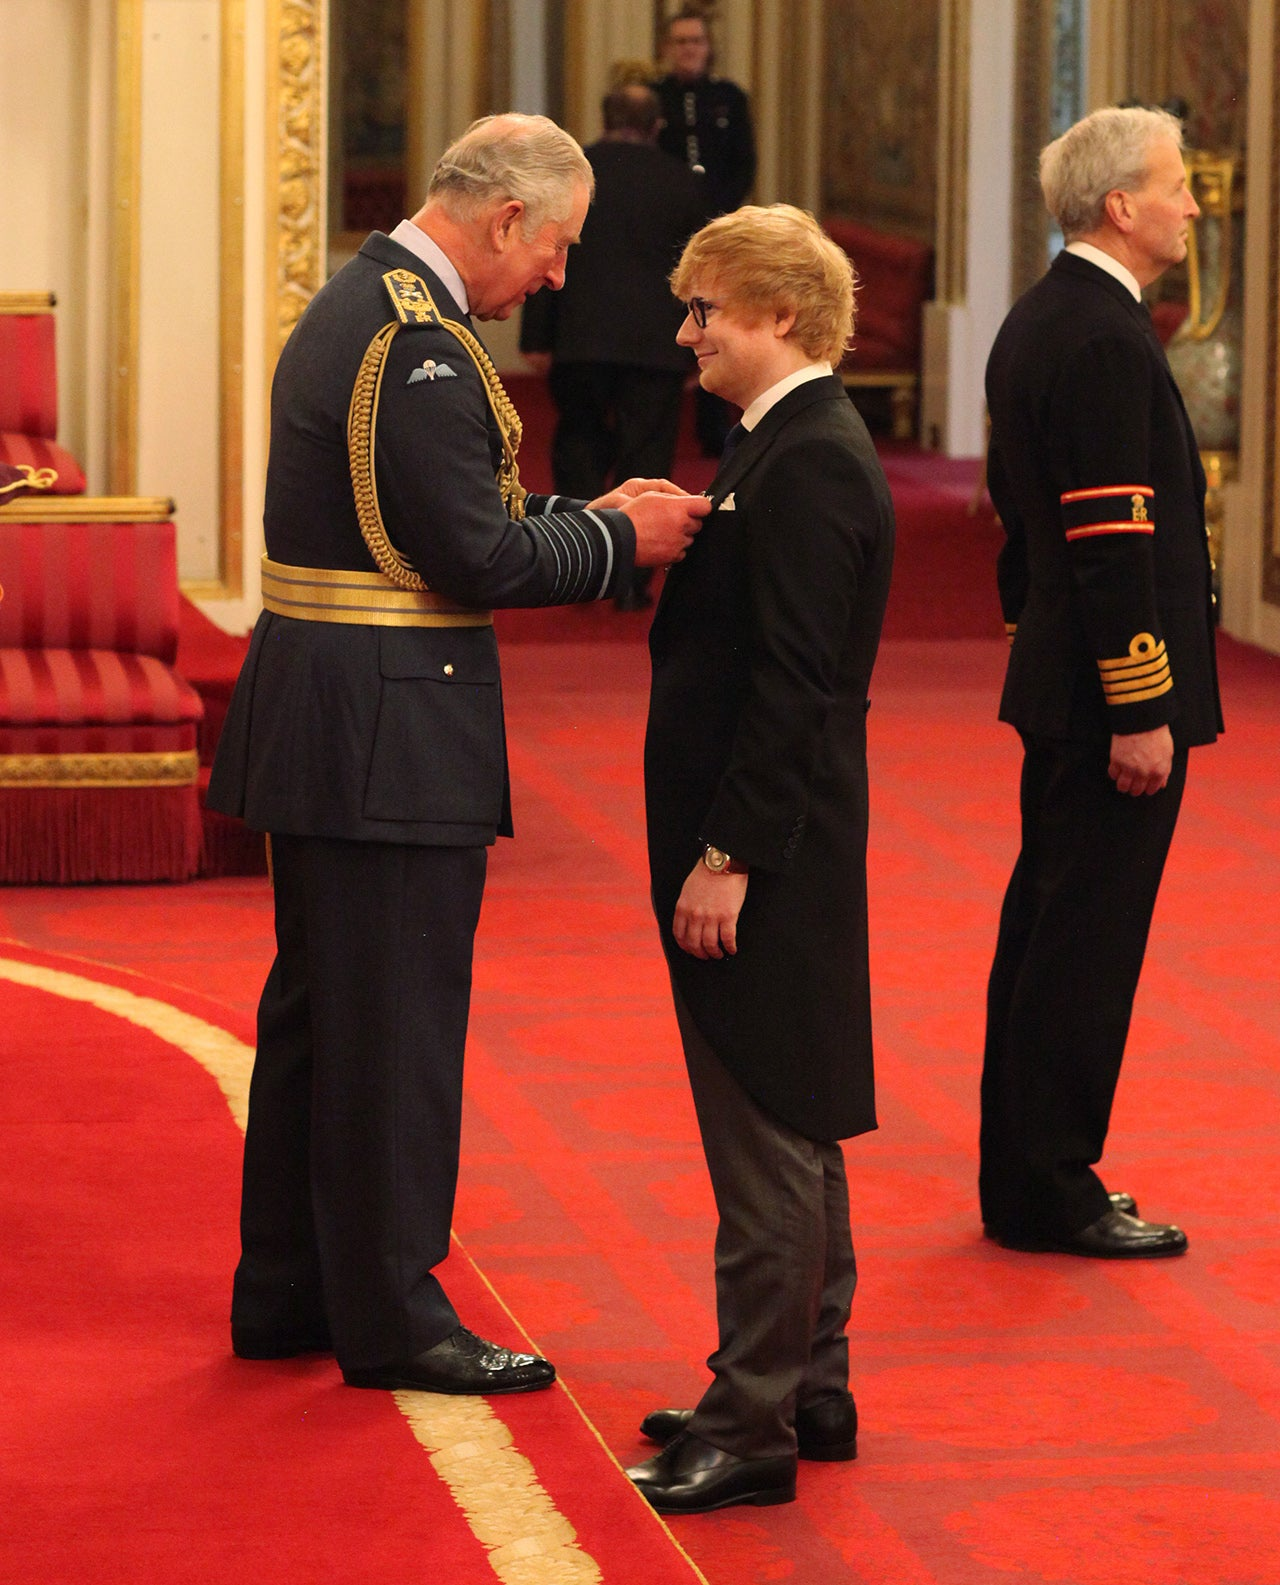 Ed Sheeran receives royal honor from Prince Charles